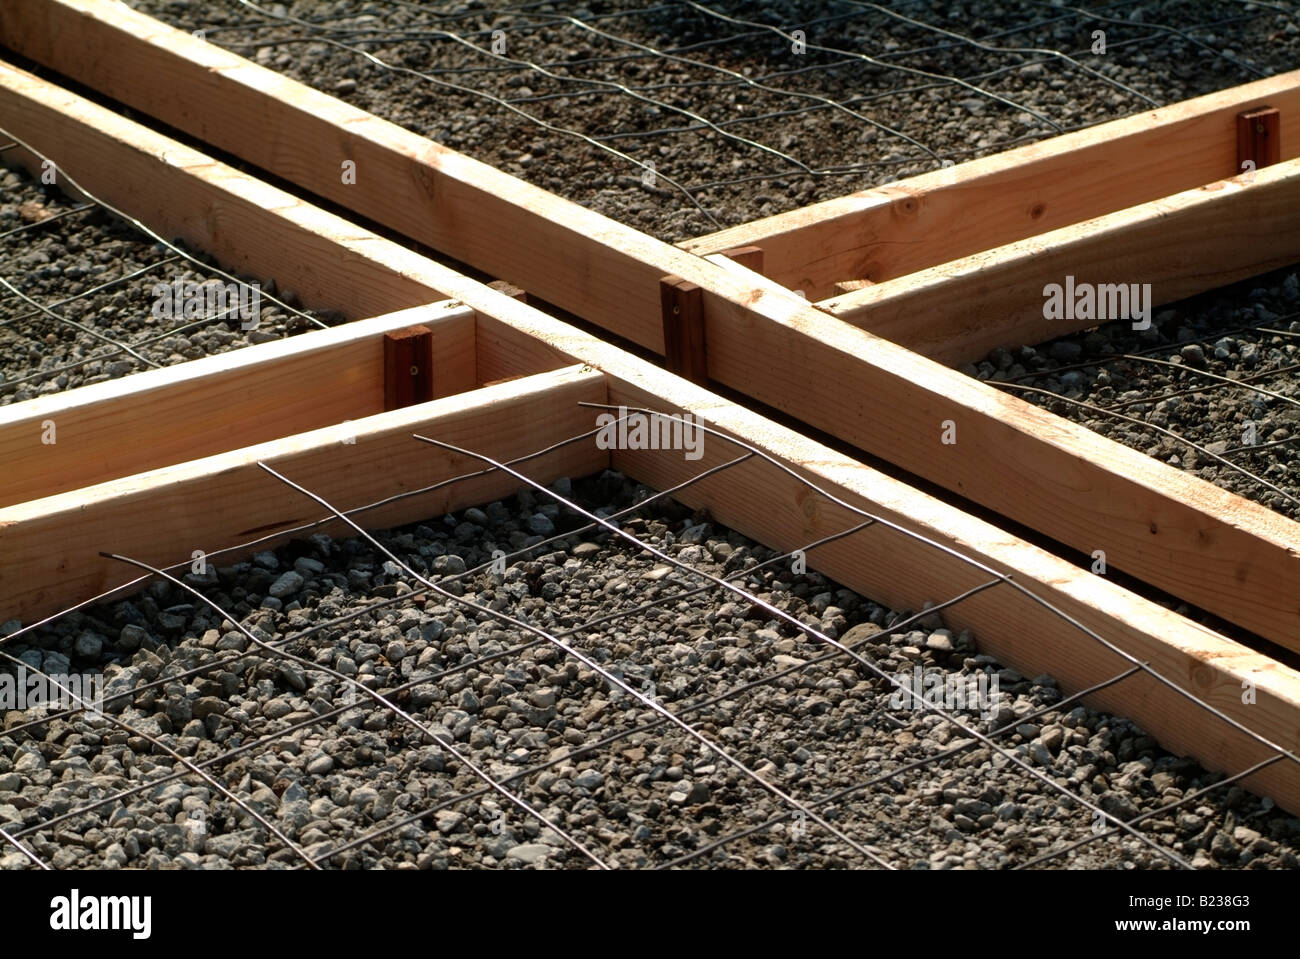 Wooden forms and rebar before concrete slabs are pored to make a patio at a private home in California. Stock Photo